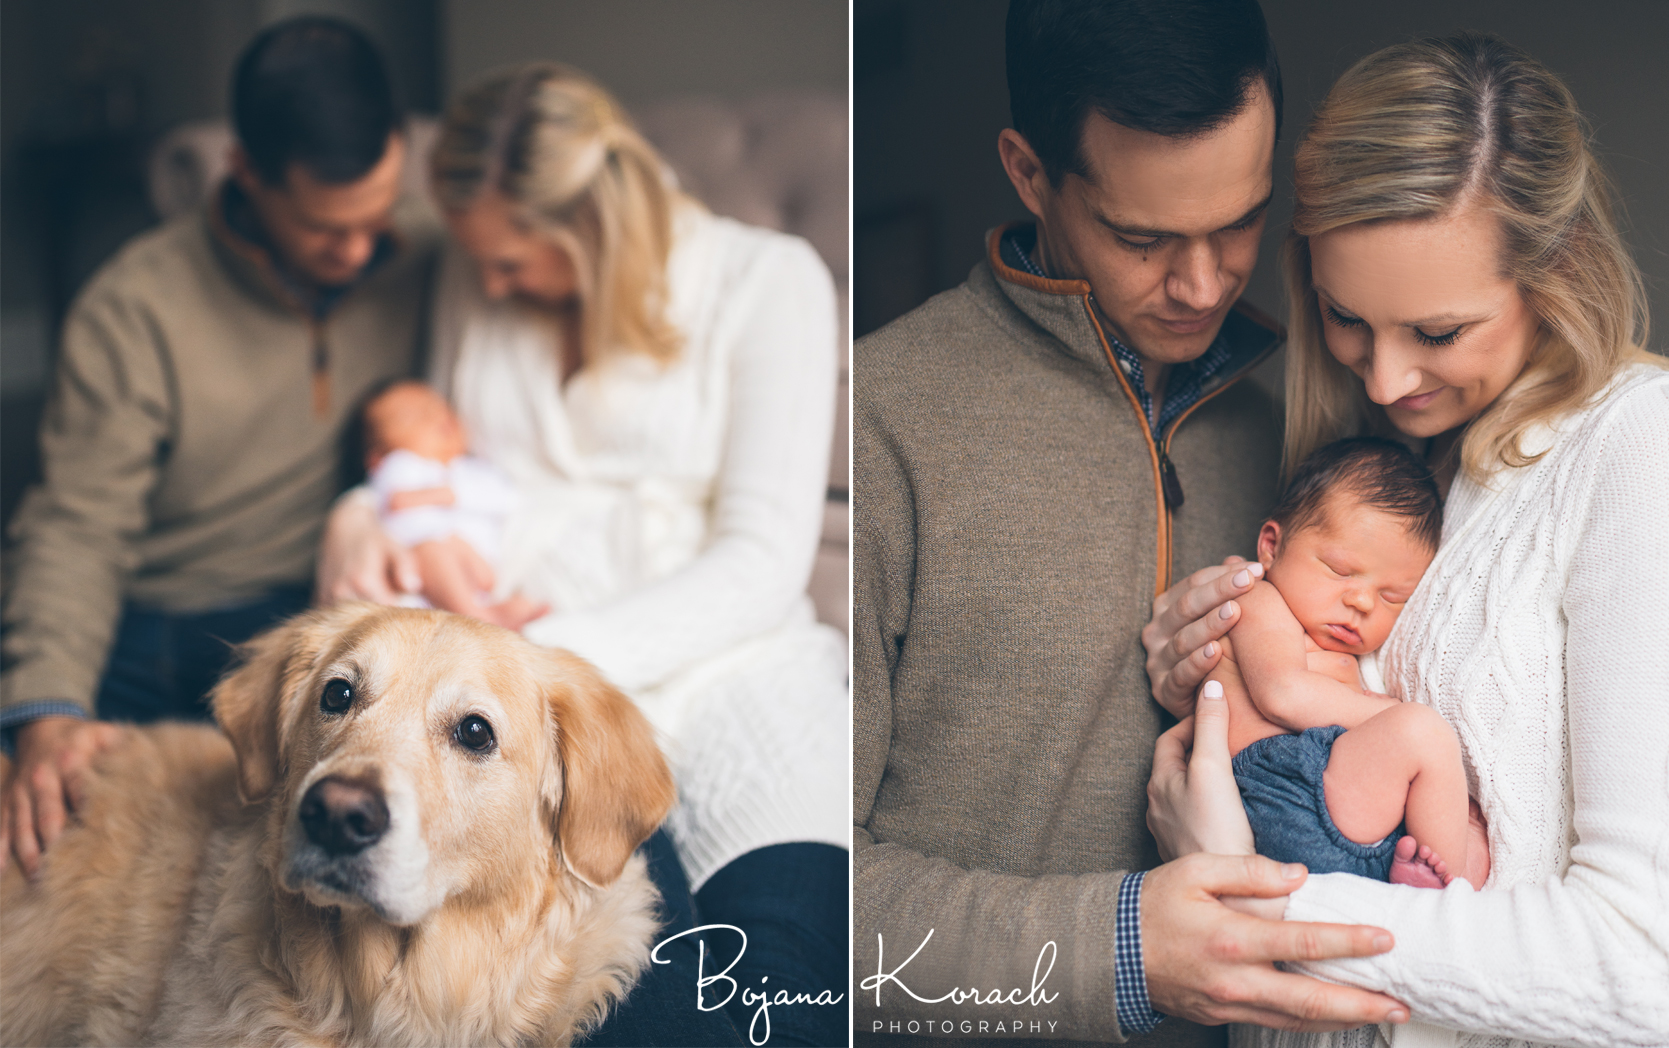 family portrait with newborn baby and golden retriever